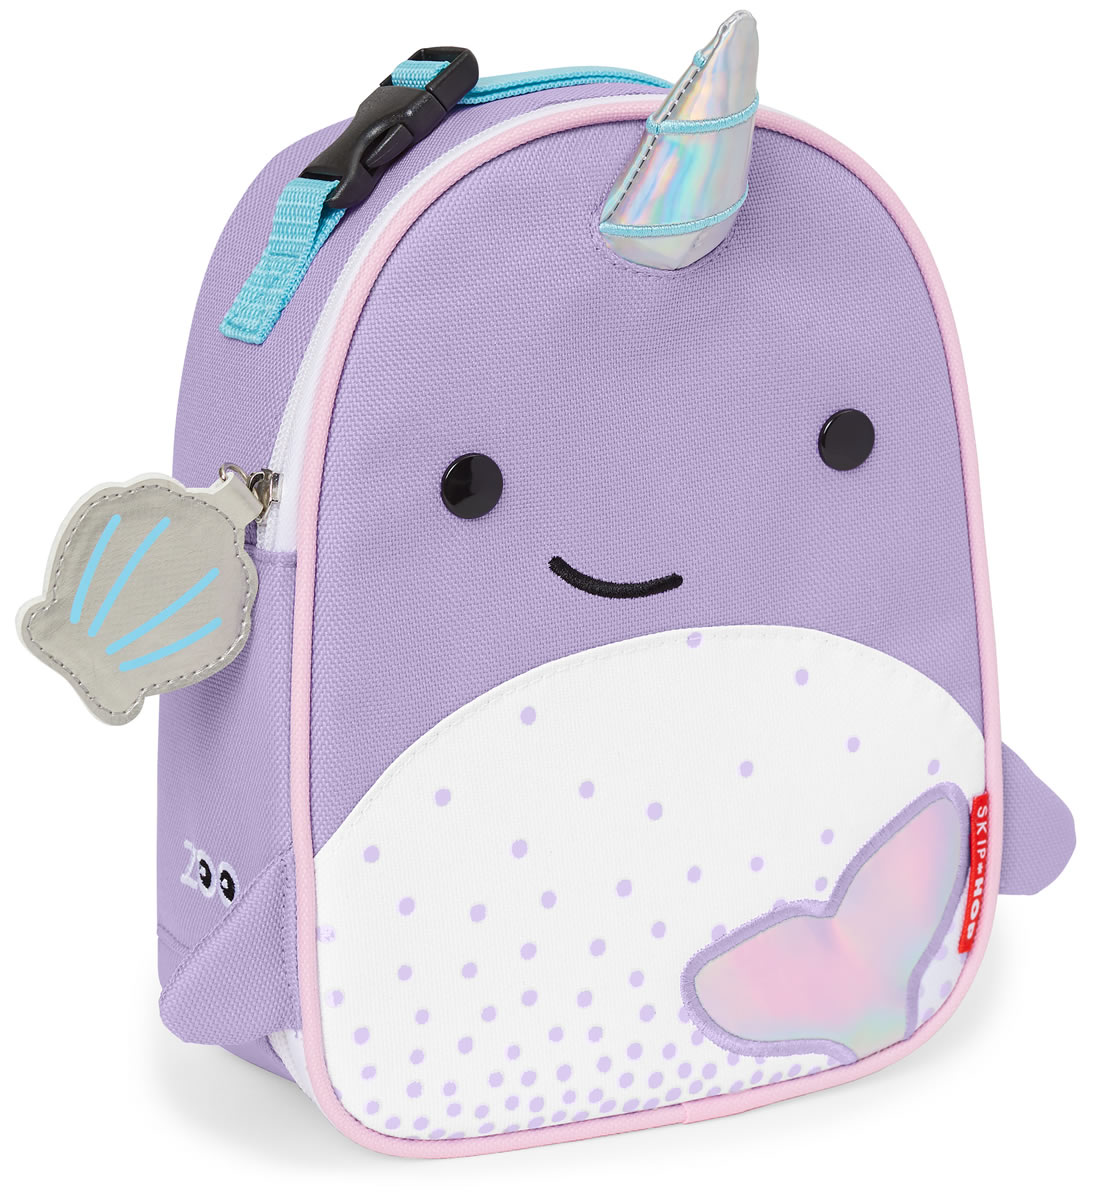 02c2cf0977f1 Skip Hop Zoo Lunchie Insulated Lunch Bag - Narwhal